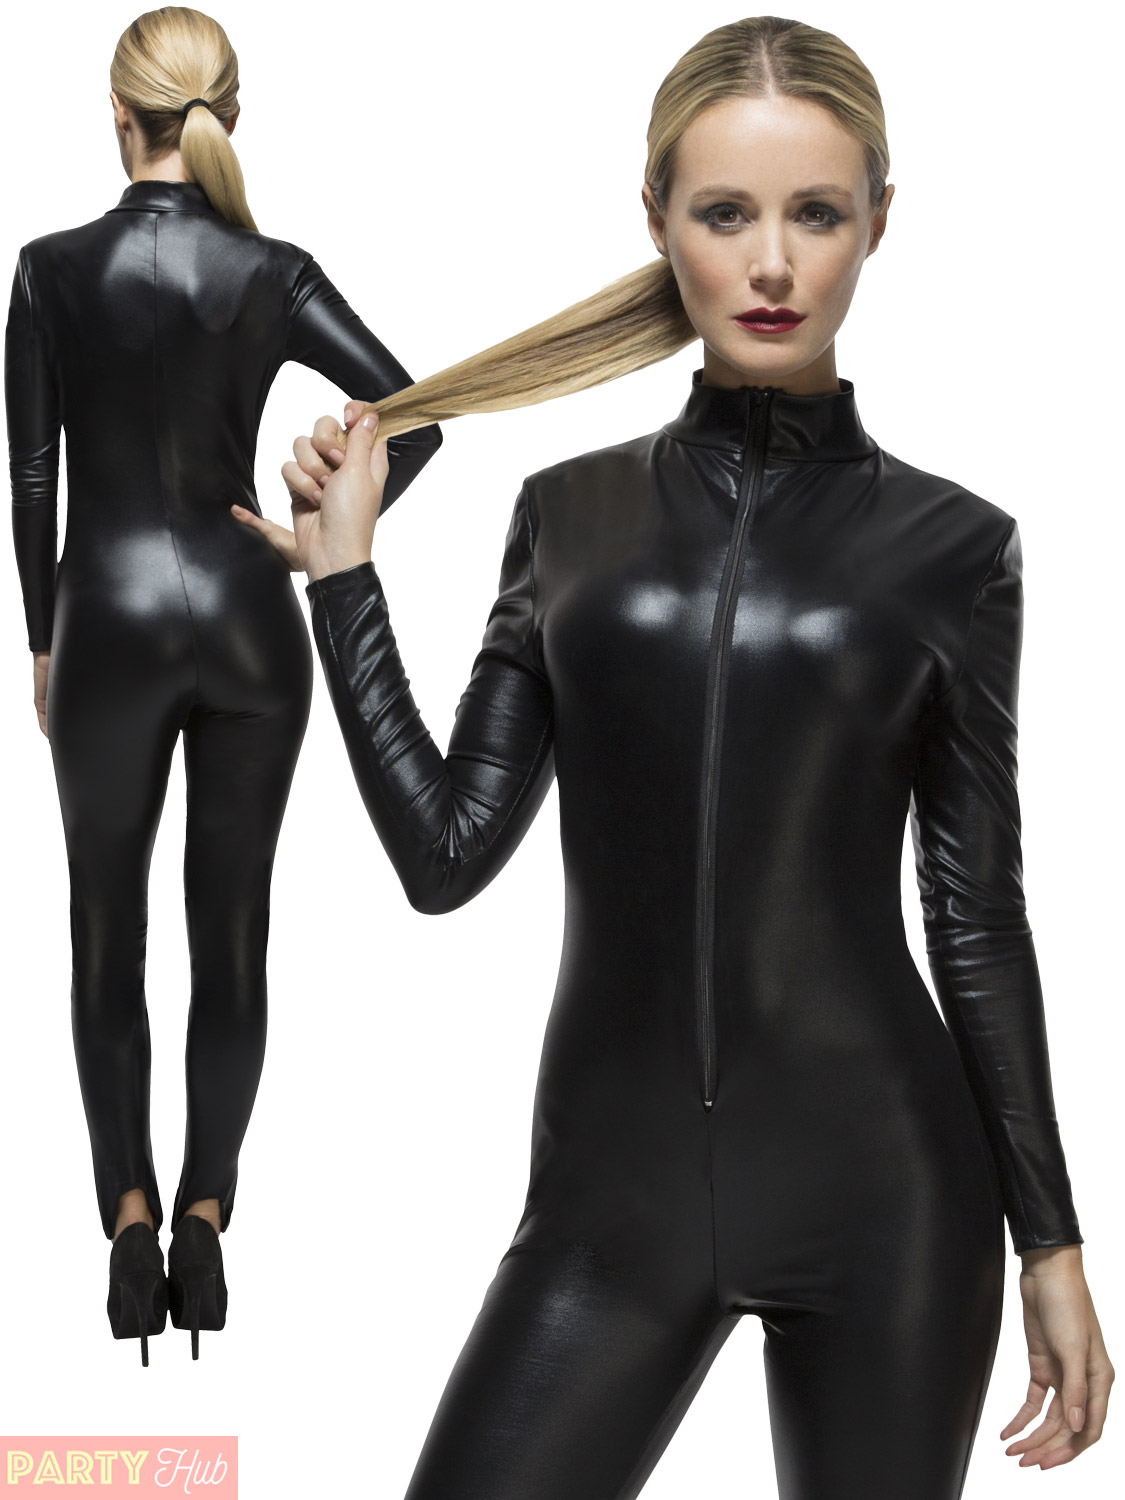 Black Women Catsuit Shiny Metallic Halloween Costume Cosplay Halloween. The catsuit is famous for its shiny metallic material and unicolor cripatsur.ga classic black catsuit displays your fabulous beautiful figure that you can gain more attention from cripatsur.ga the same time,the sexy black makes people recall the cool heros in the movice The cripatsur.gas,the white zipper in the back highlights.